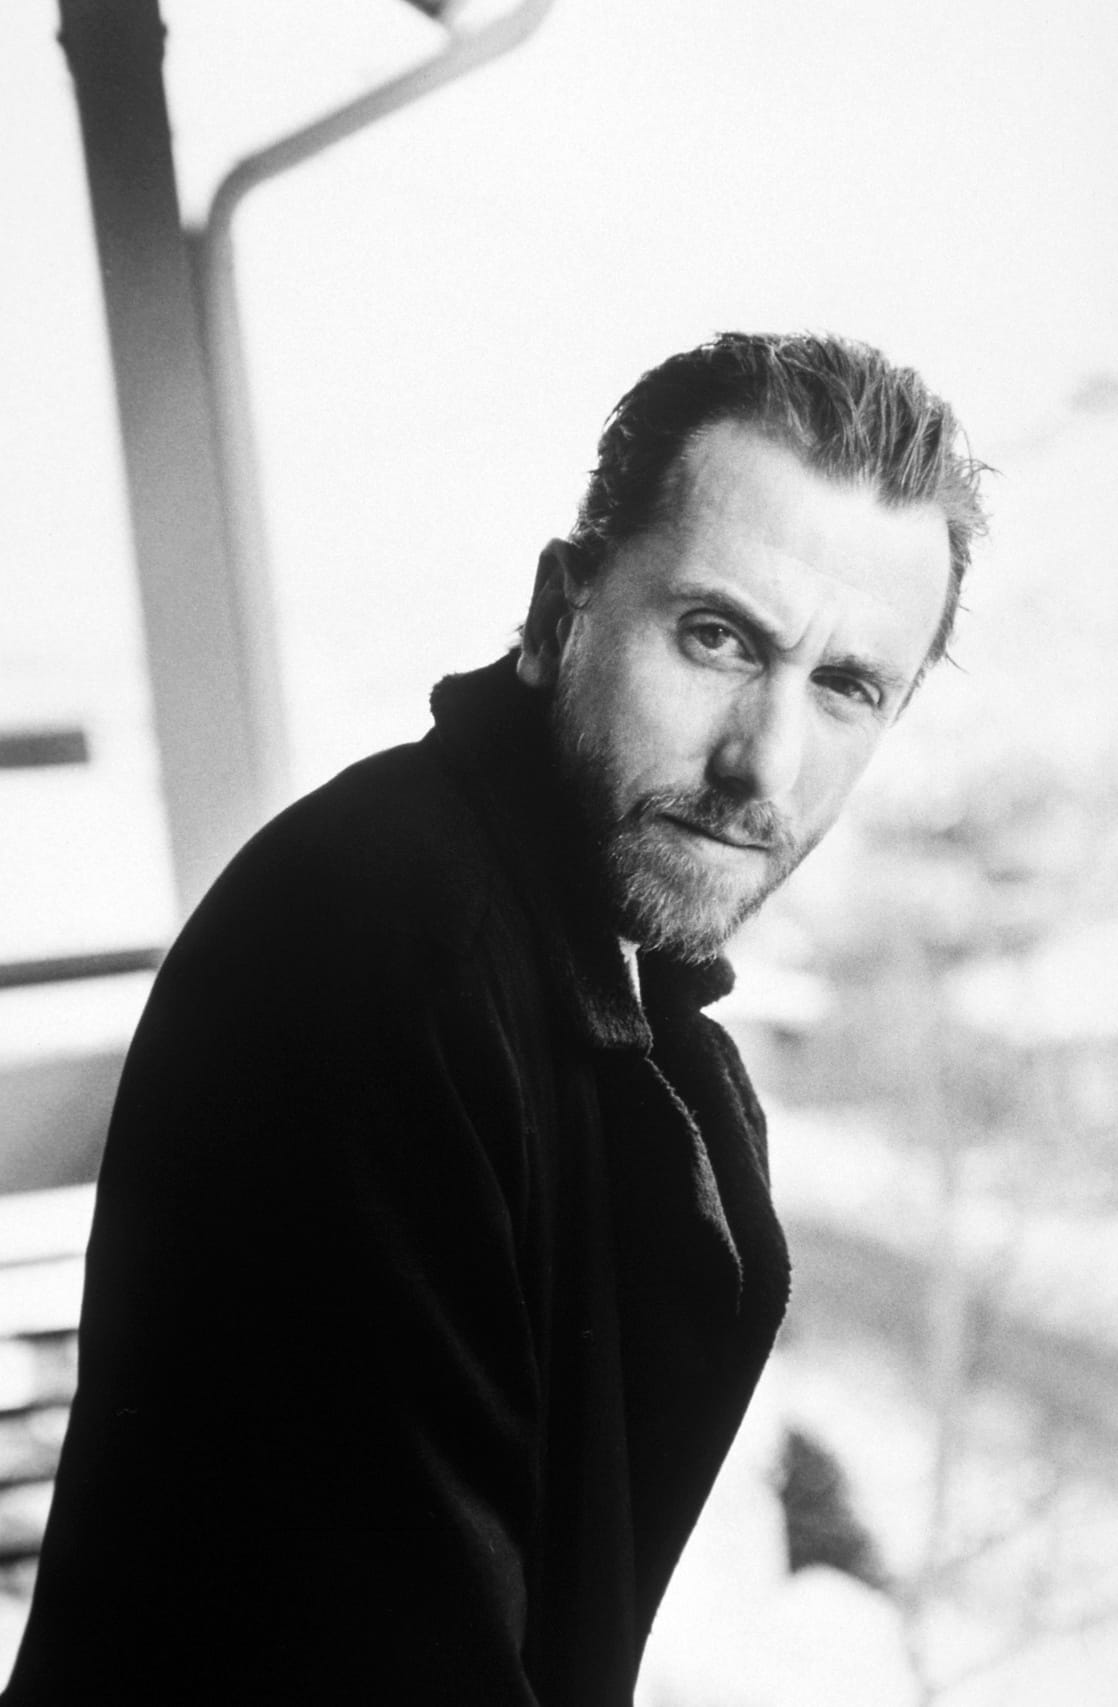 tim roth Find bio, credits and filmography information for tim roth on allmovie - with lean hangdog looks that make him a natural for the criminals and fringe dwellers he usually.